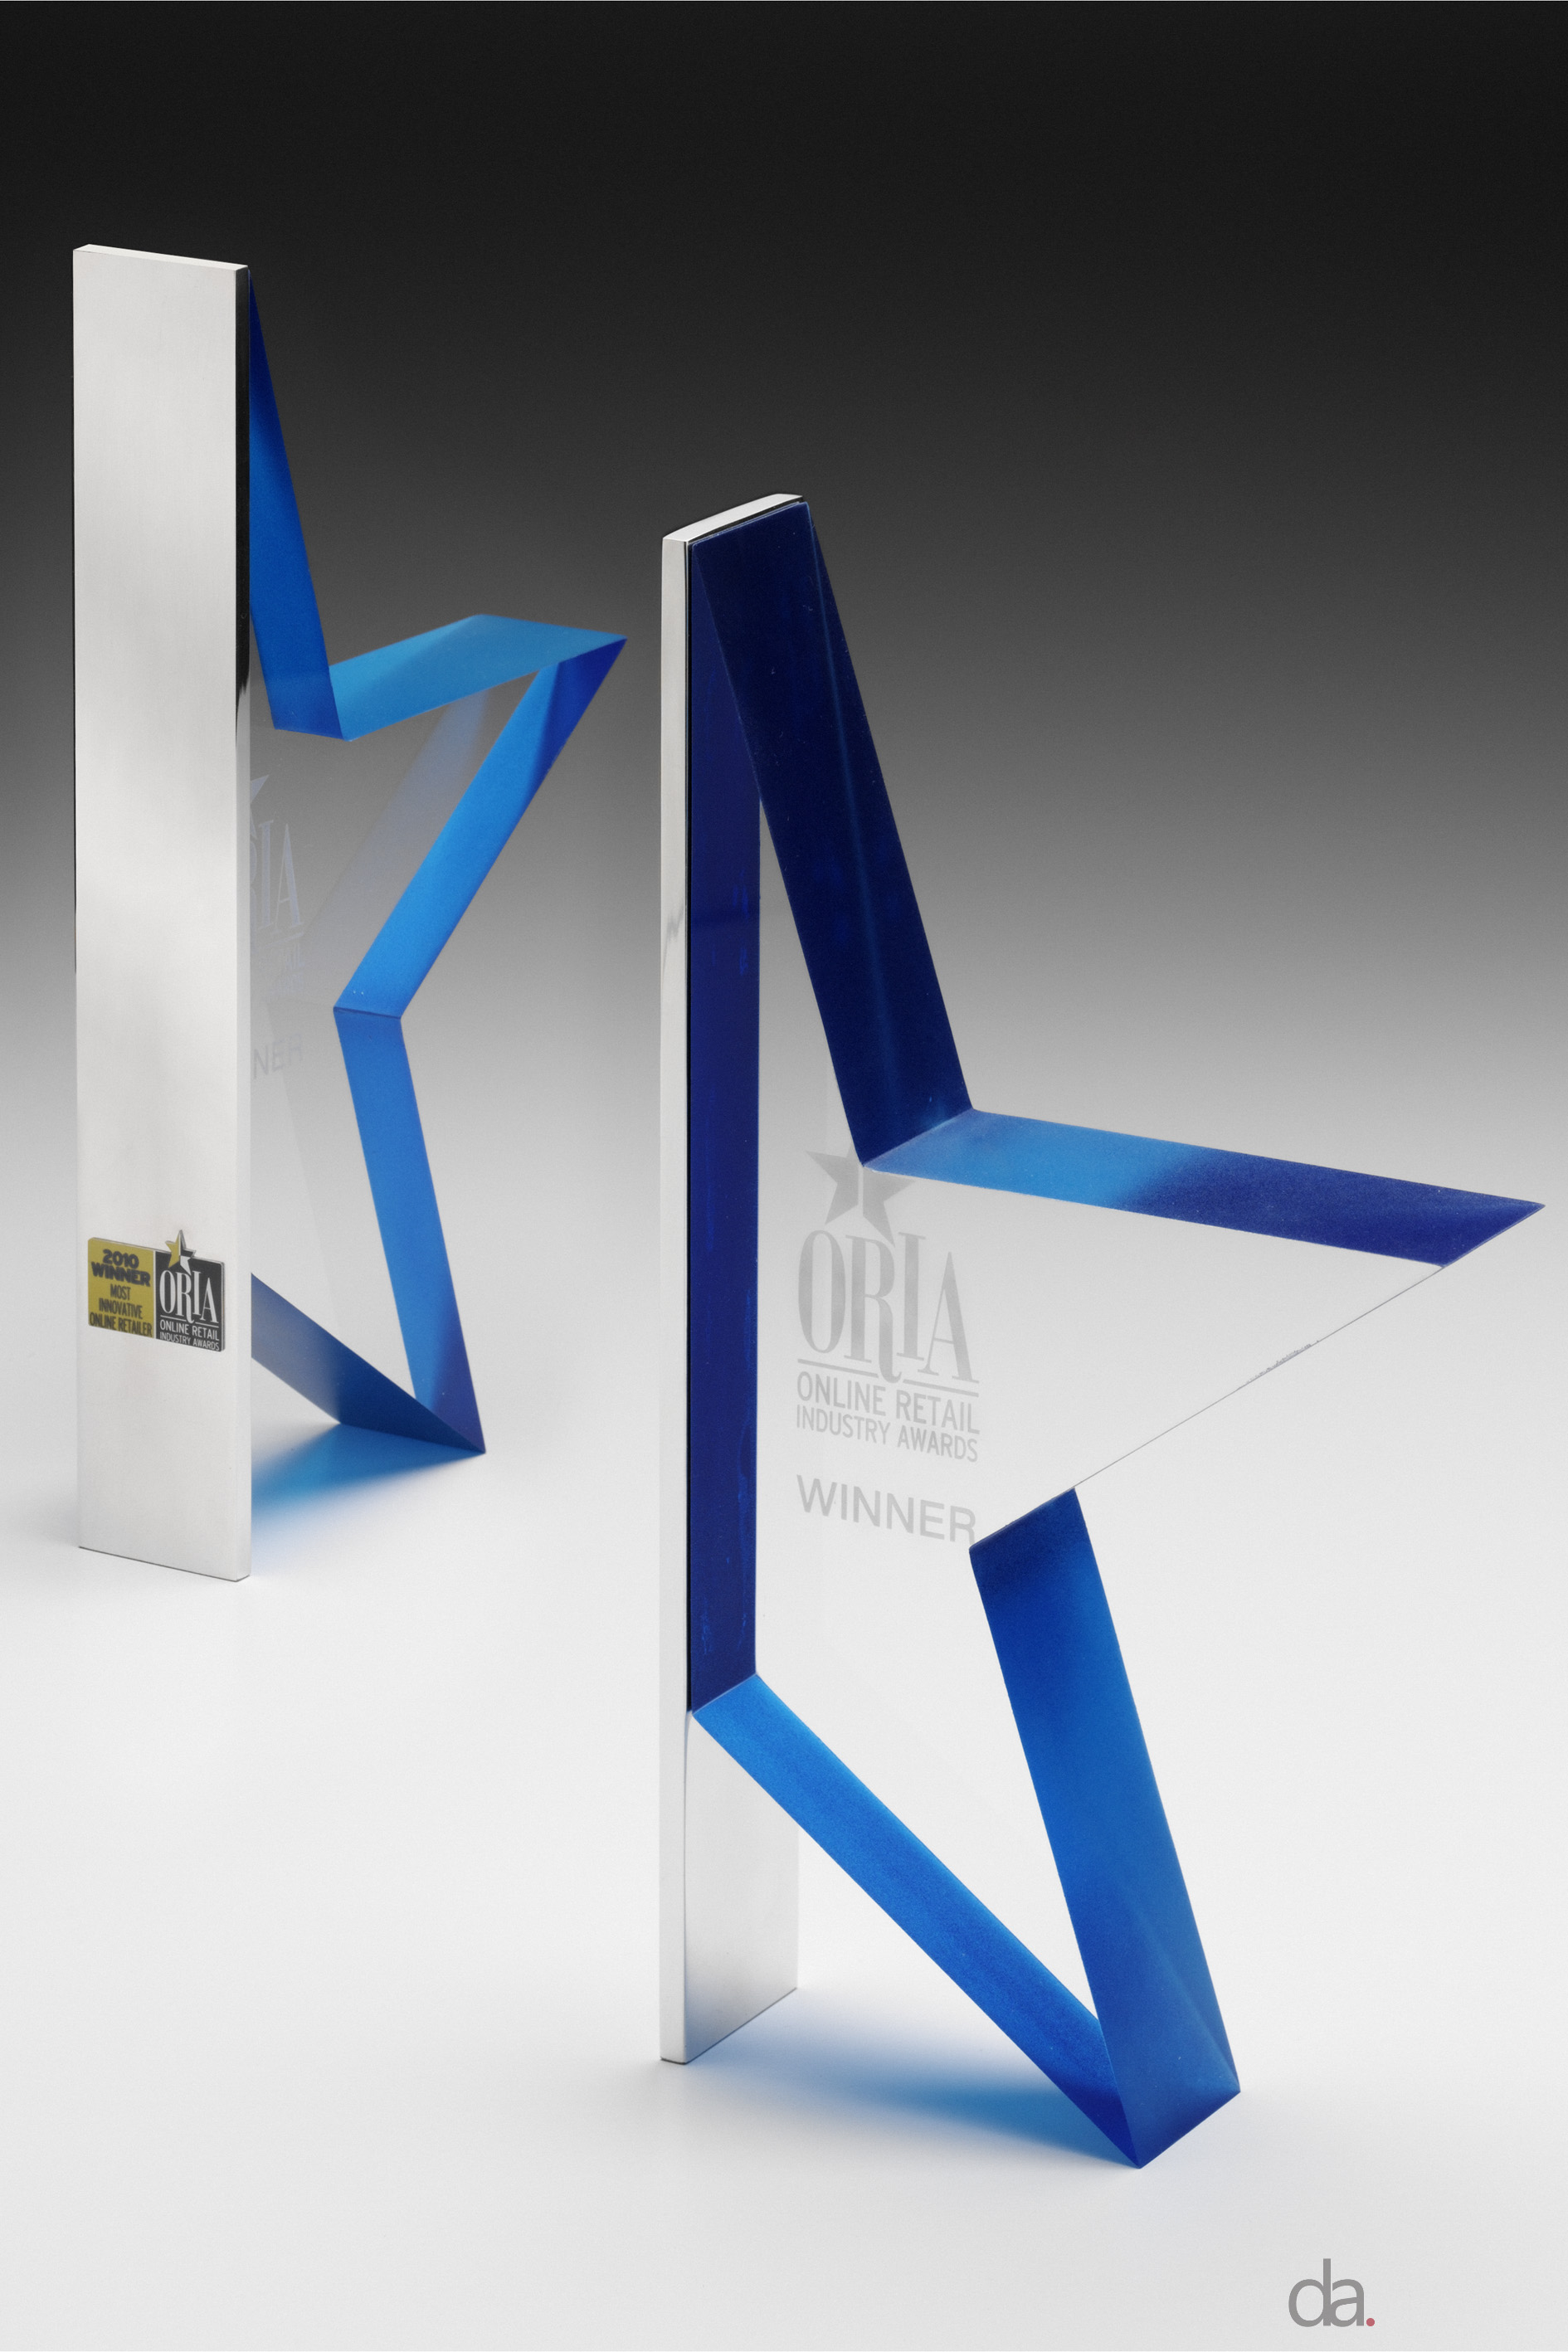 ORIAs -custom shaped acrylic, custom coloured with aluminium plating